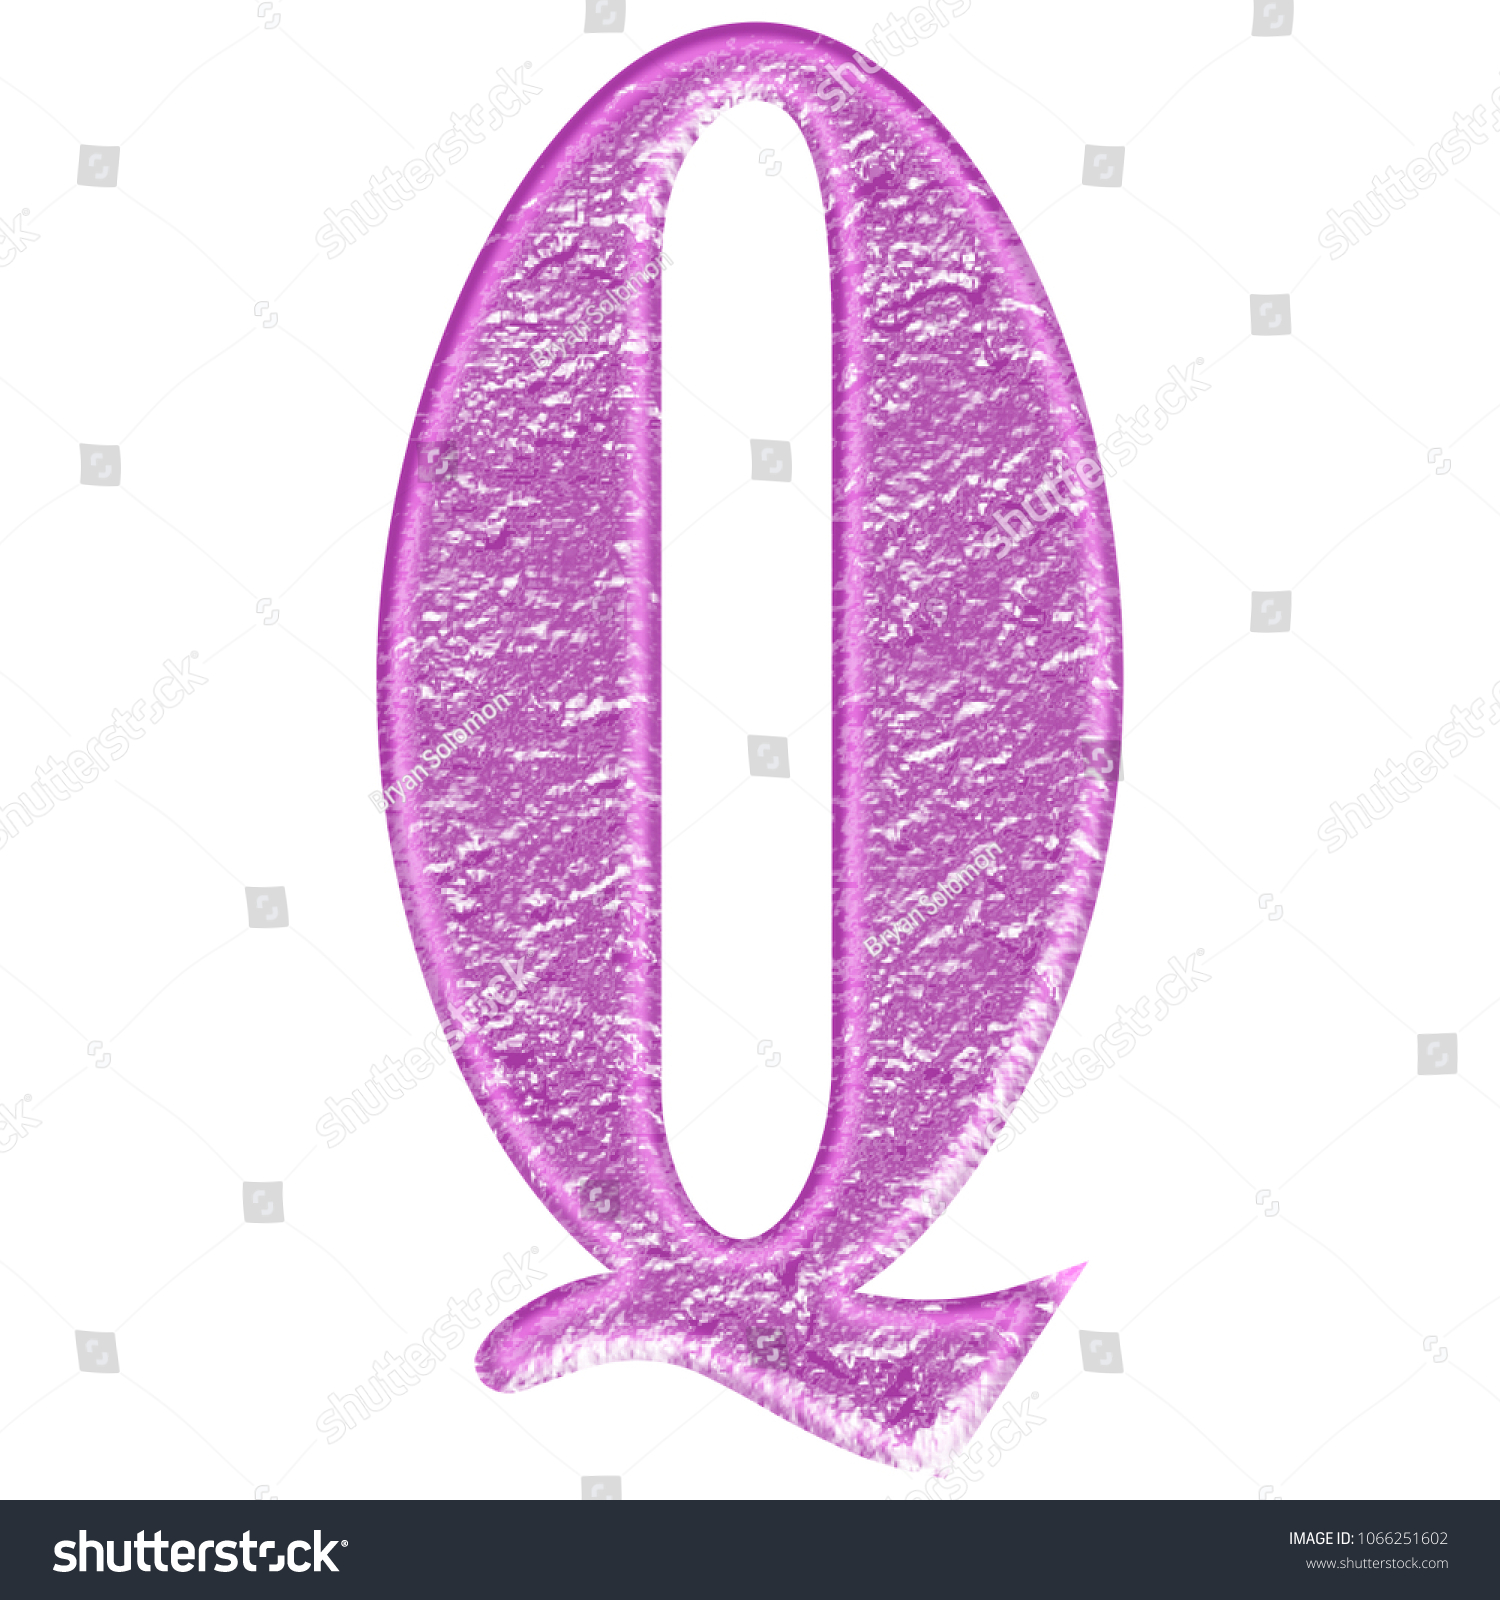 Worn Pink Metal Style Letter Q Stock Illustration 1066251602 ...